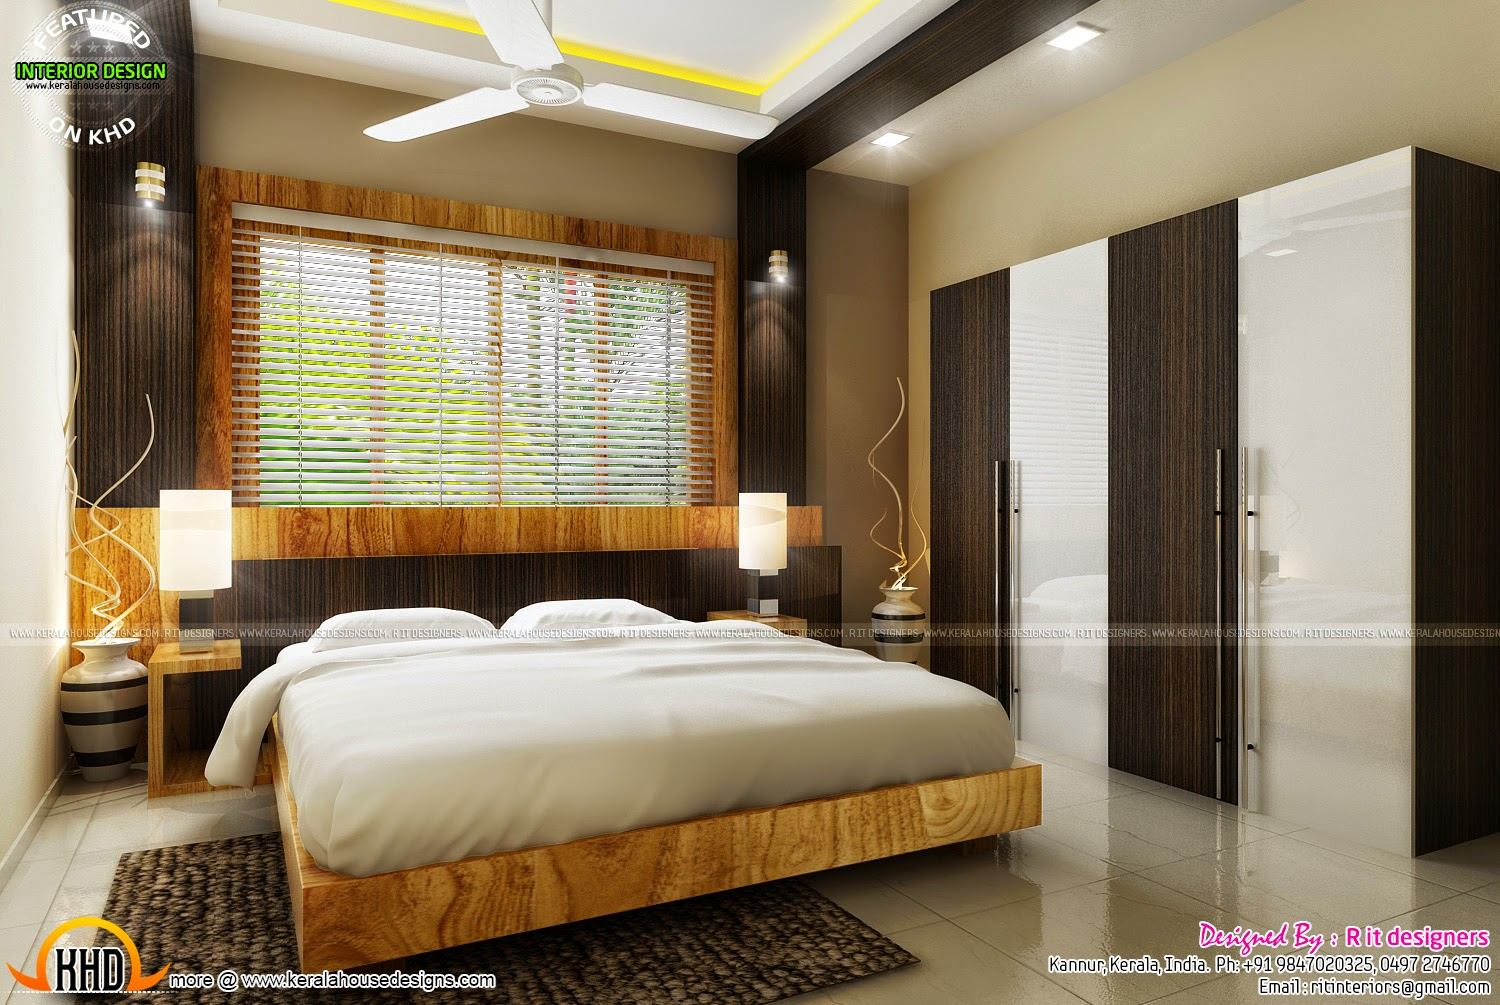 Bedroom interior design with cost kerala home design and floor plans - Interior bedroom design ...